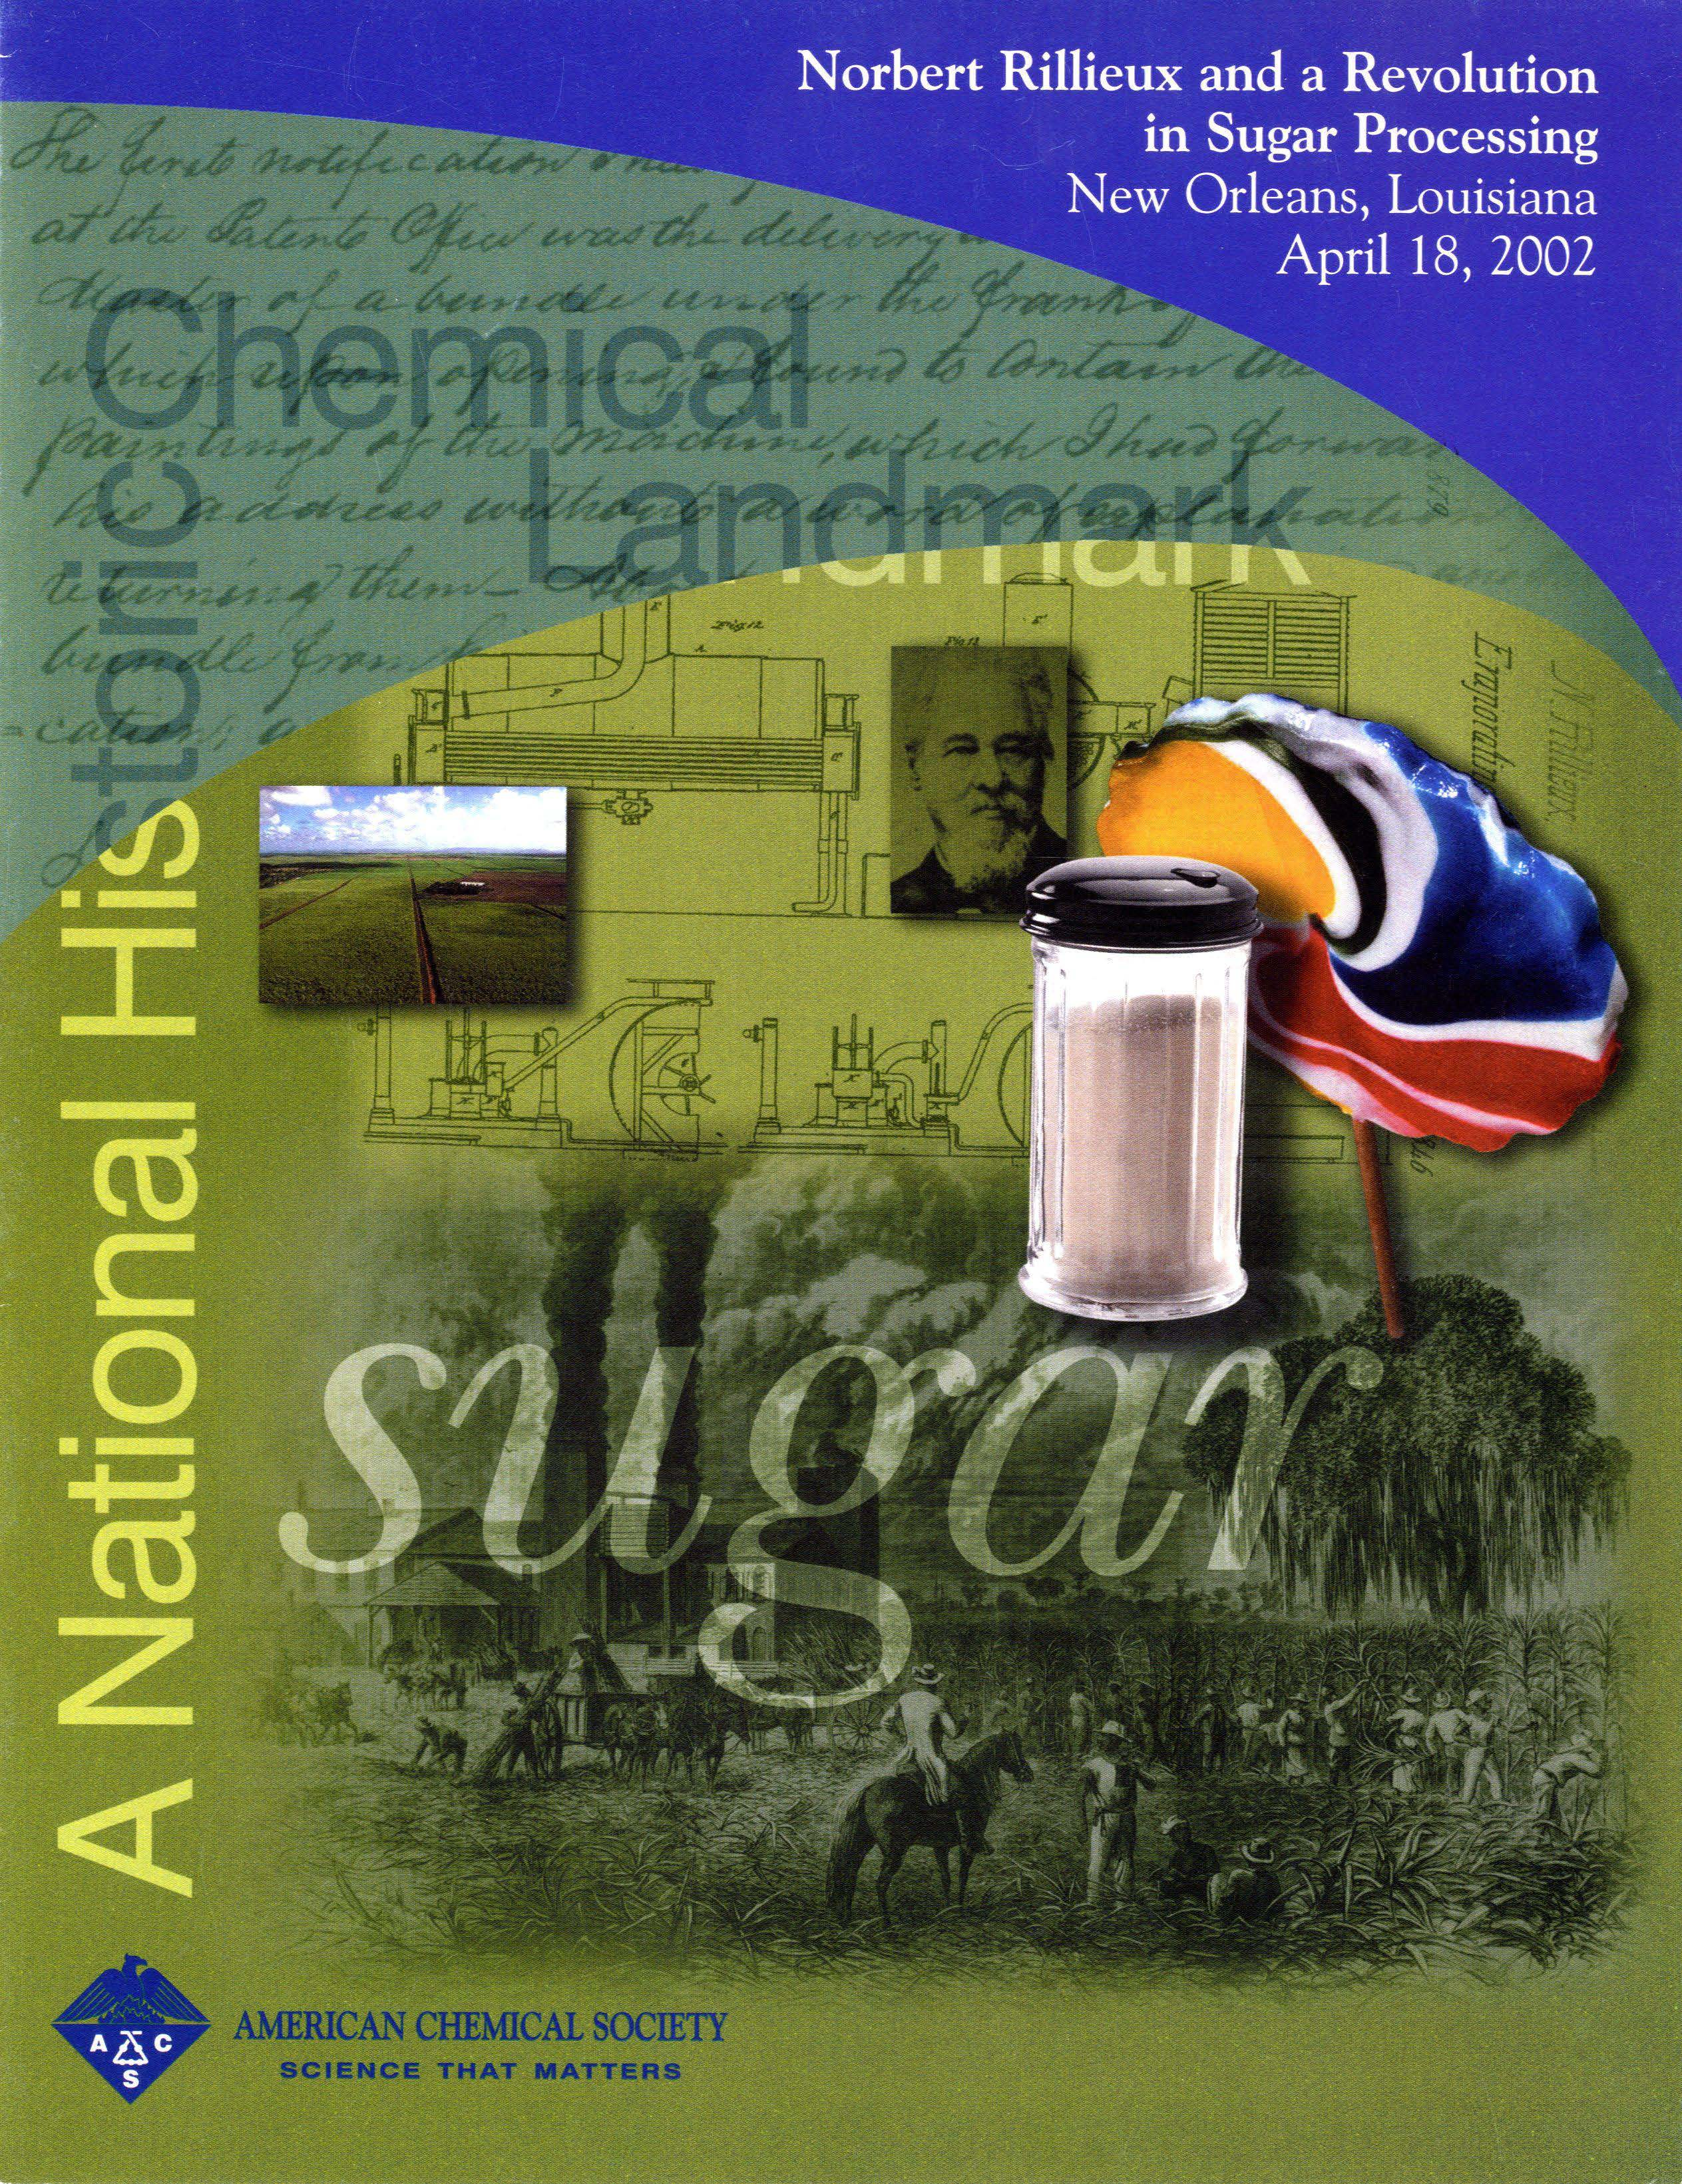 """Norbert Rillieux and a Revolution in Sugar Processing"" commemorative booklet"